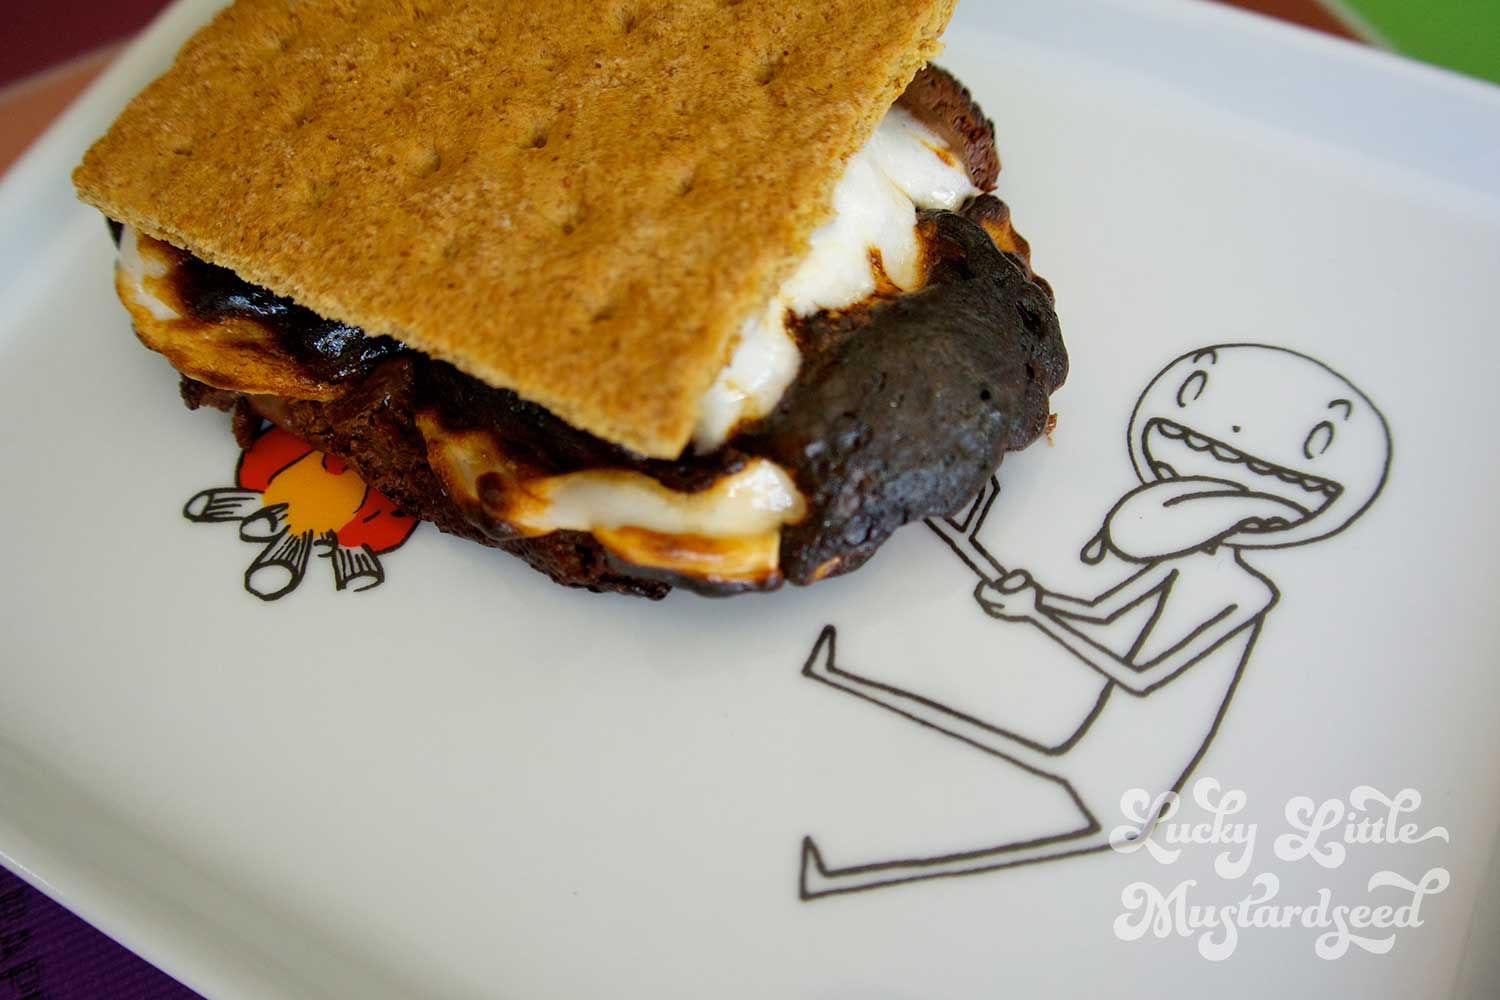 Can I Have S'mores Please?